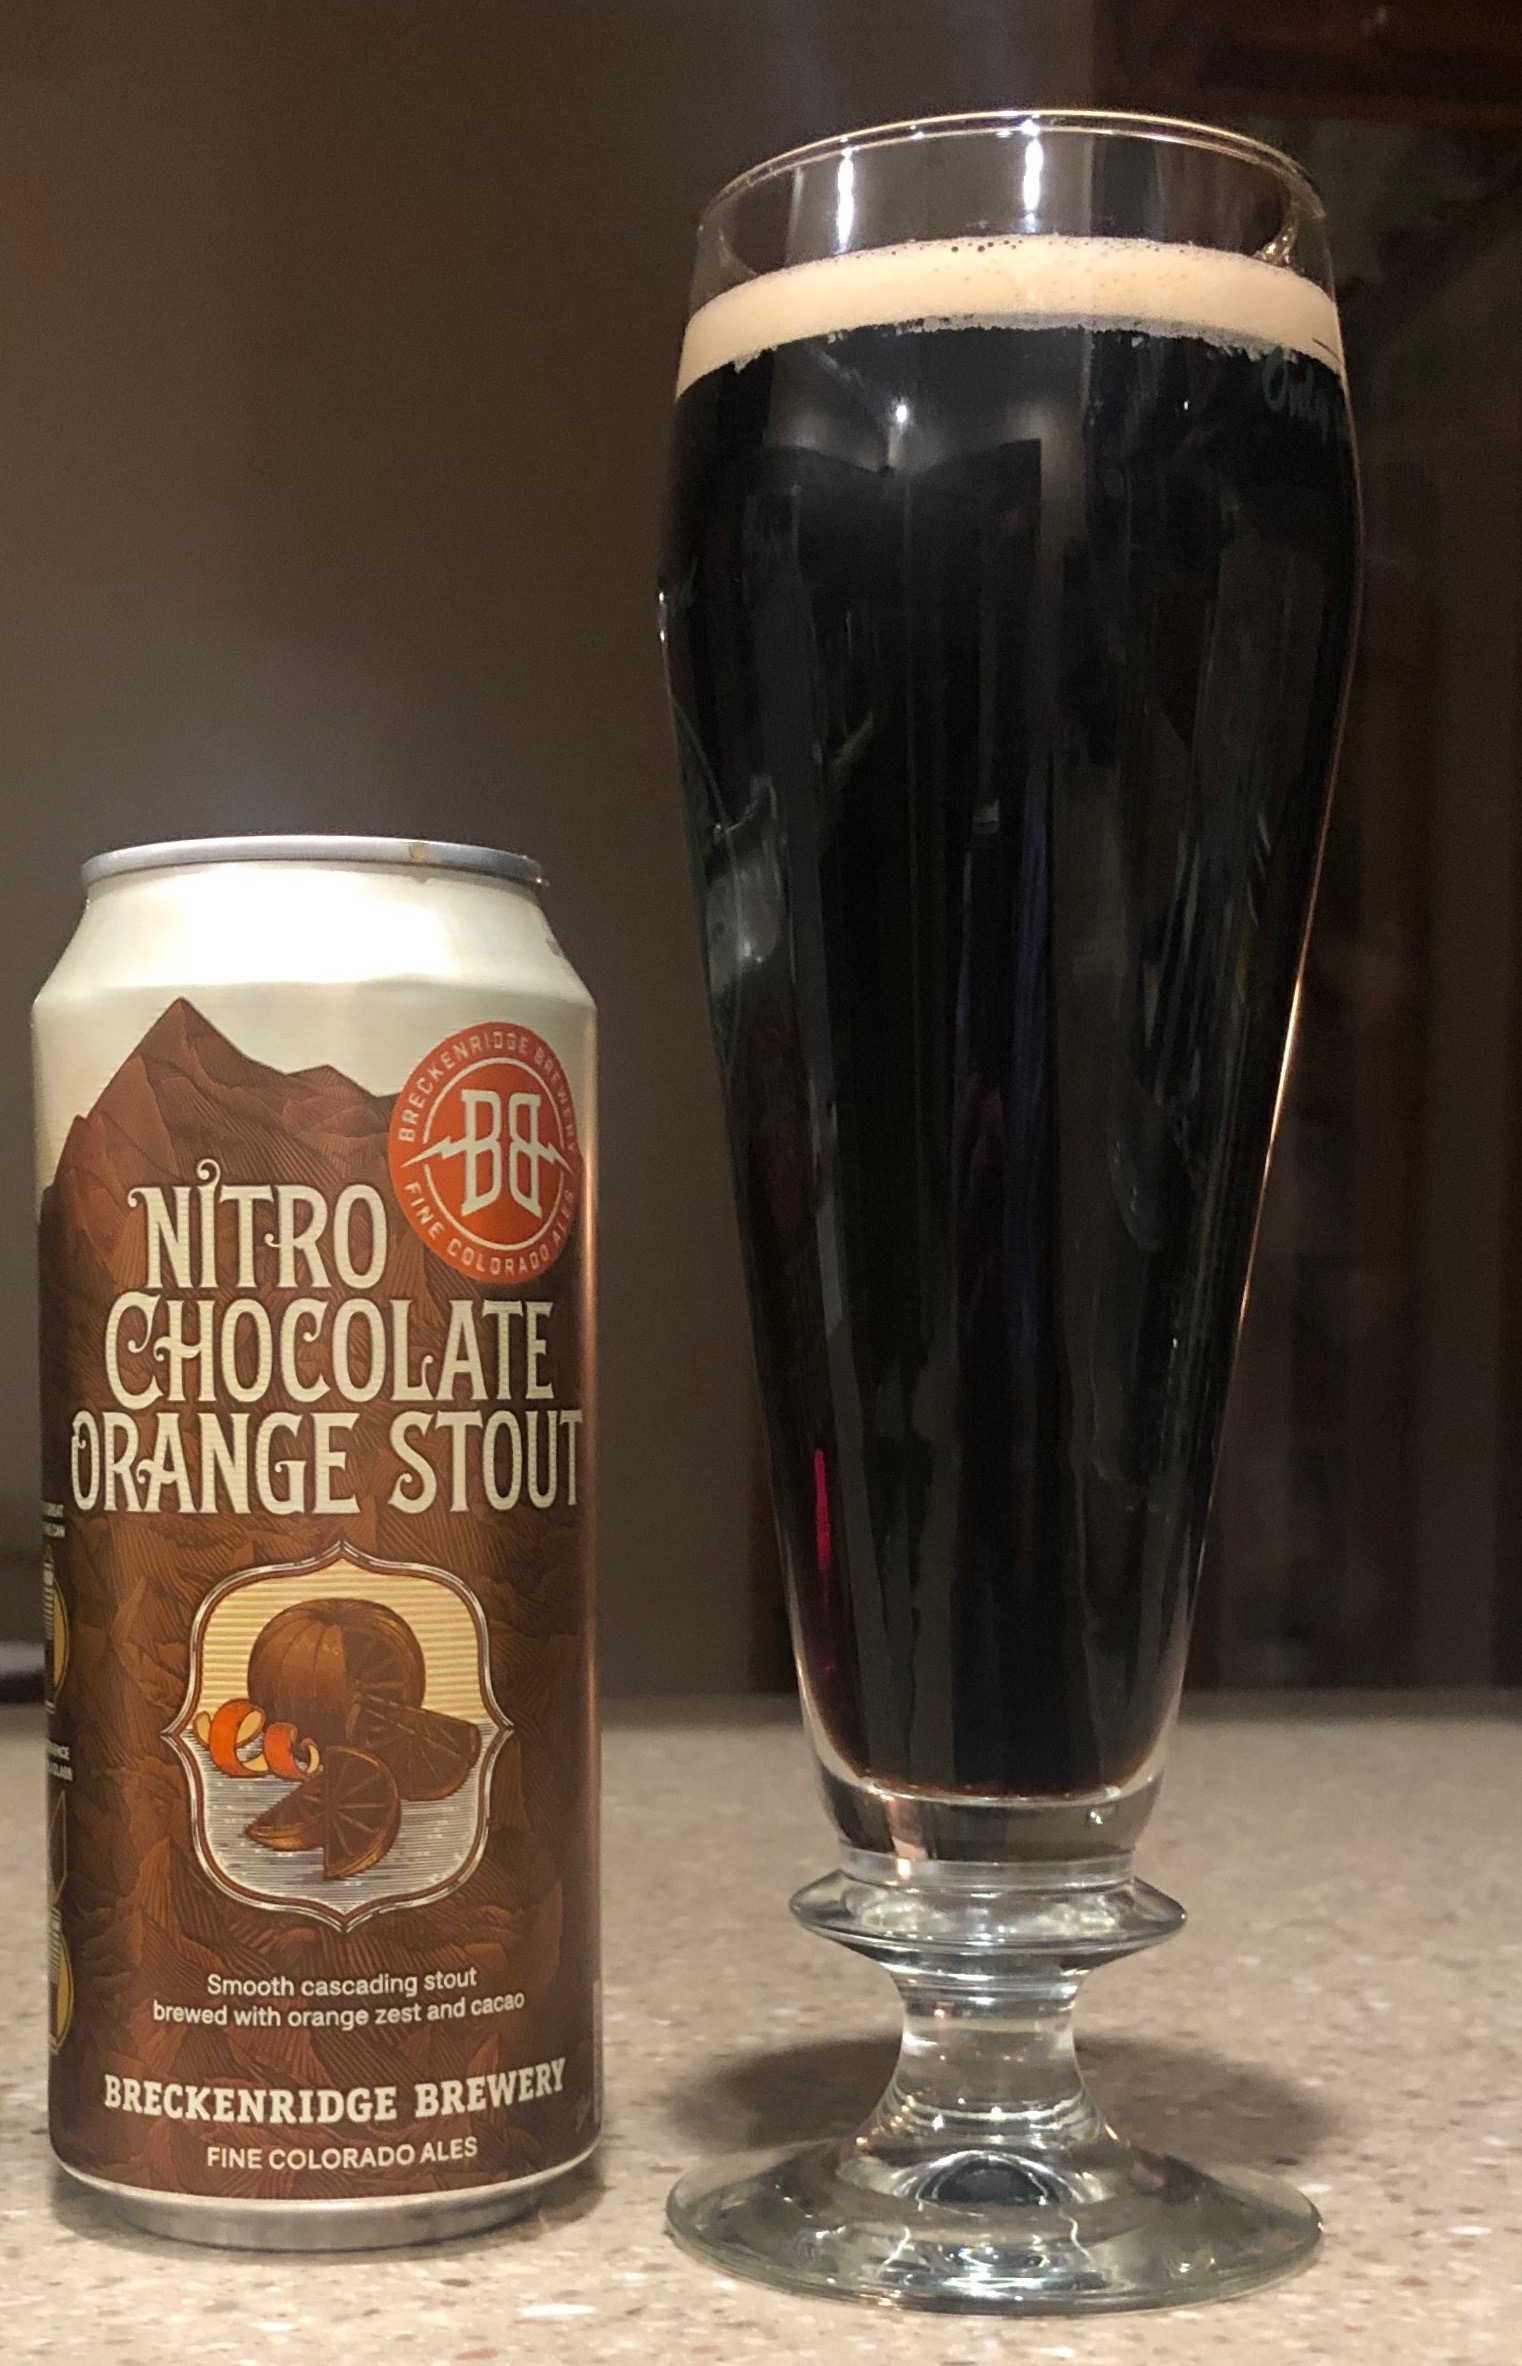 A glass pour of Breckenridge Brewery Nitro Chocolate Orange Stout.